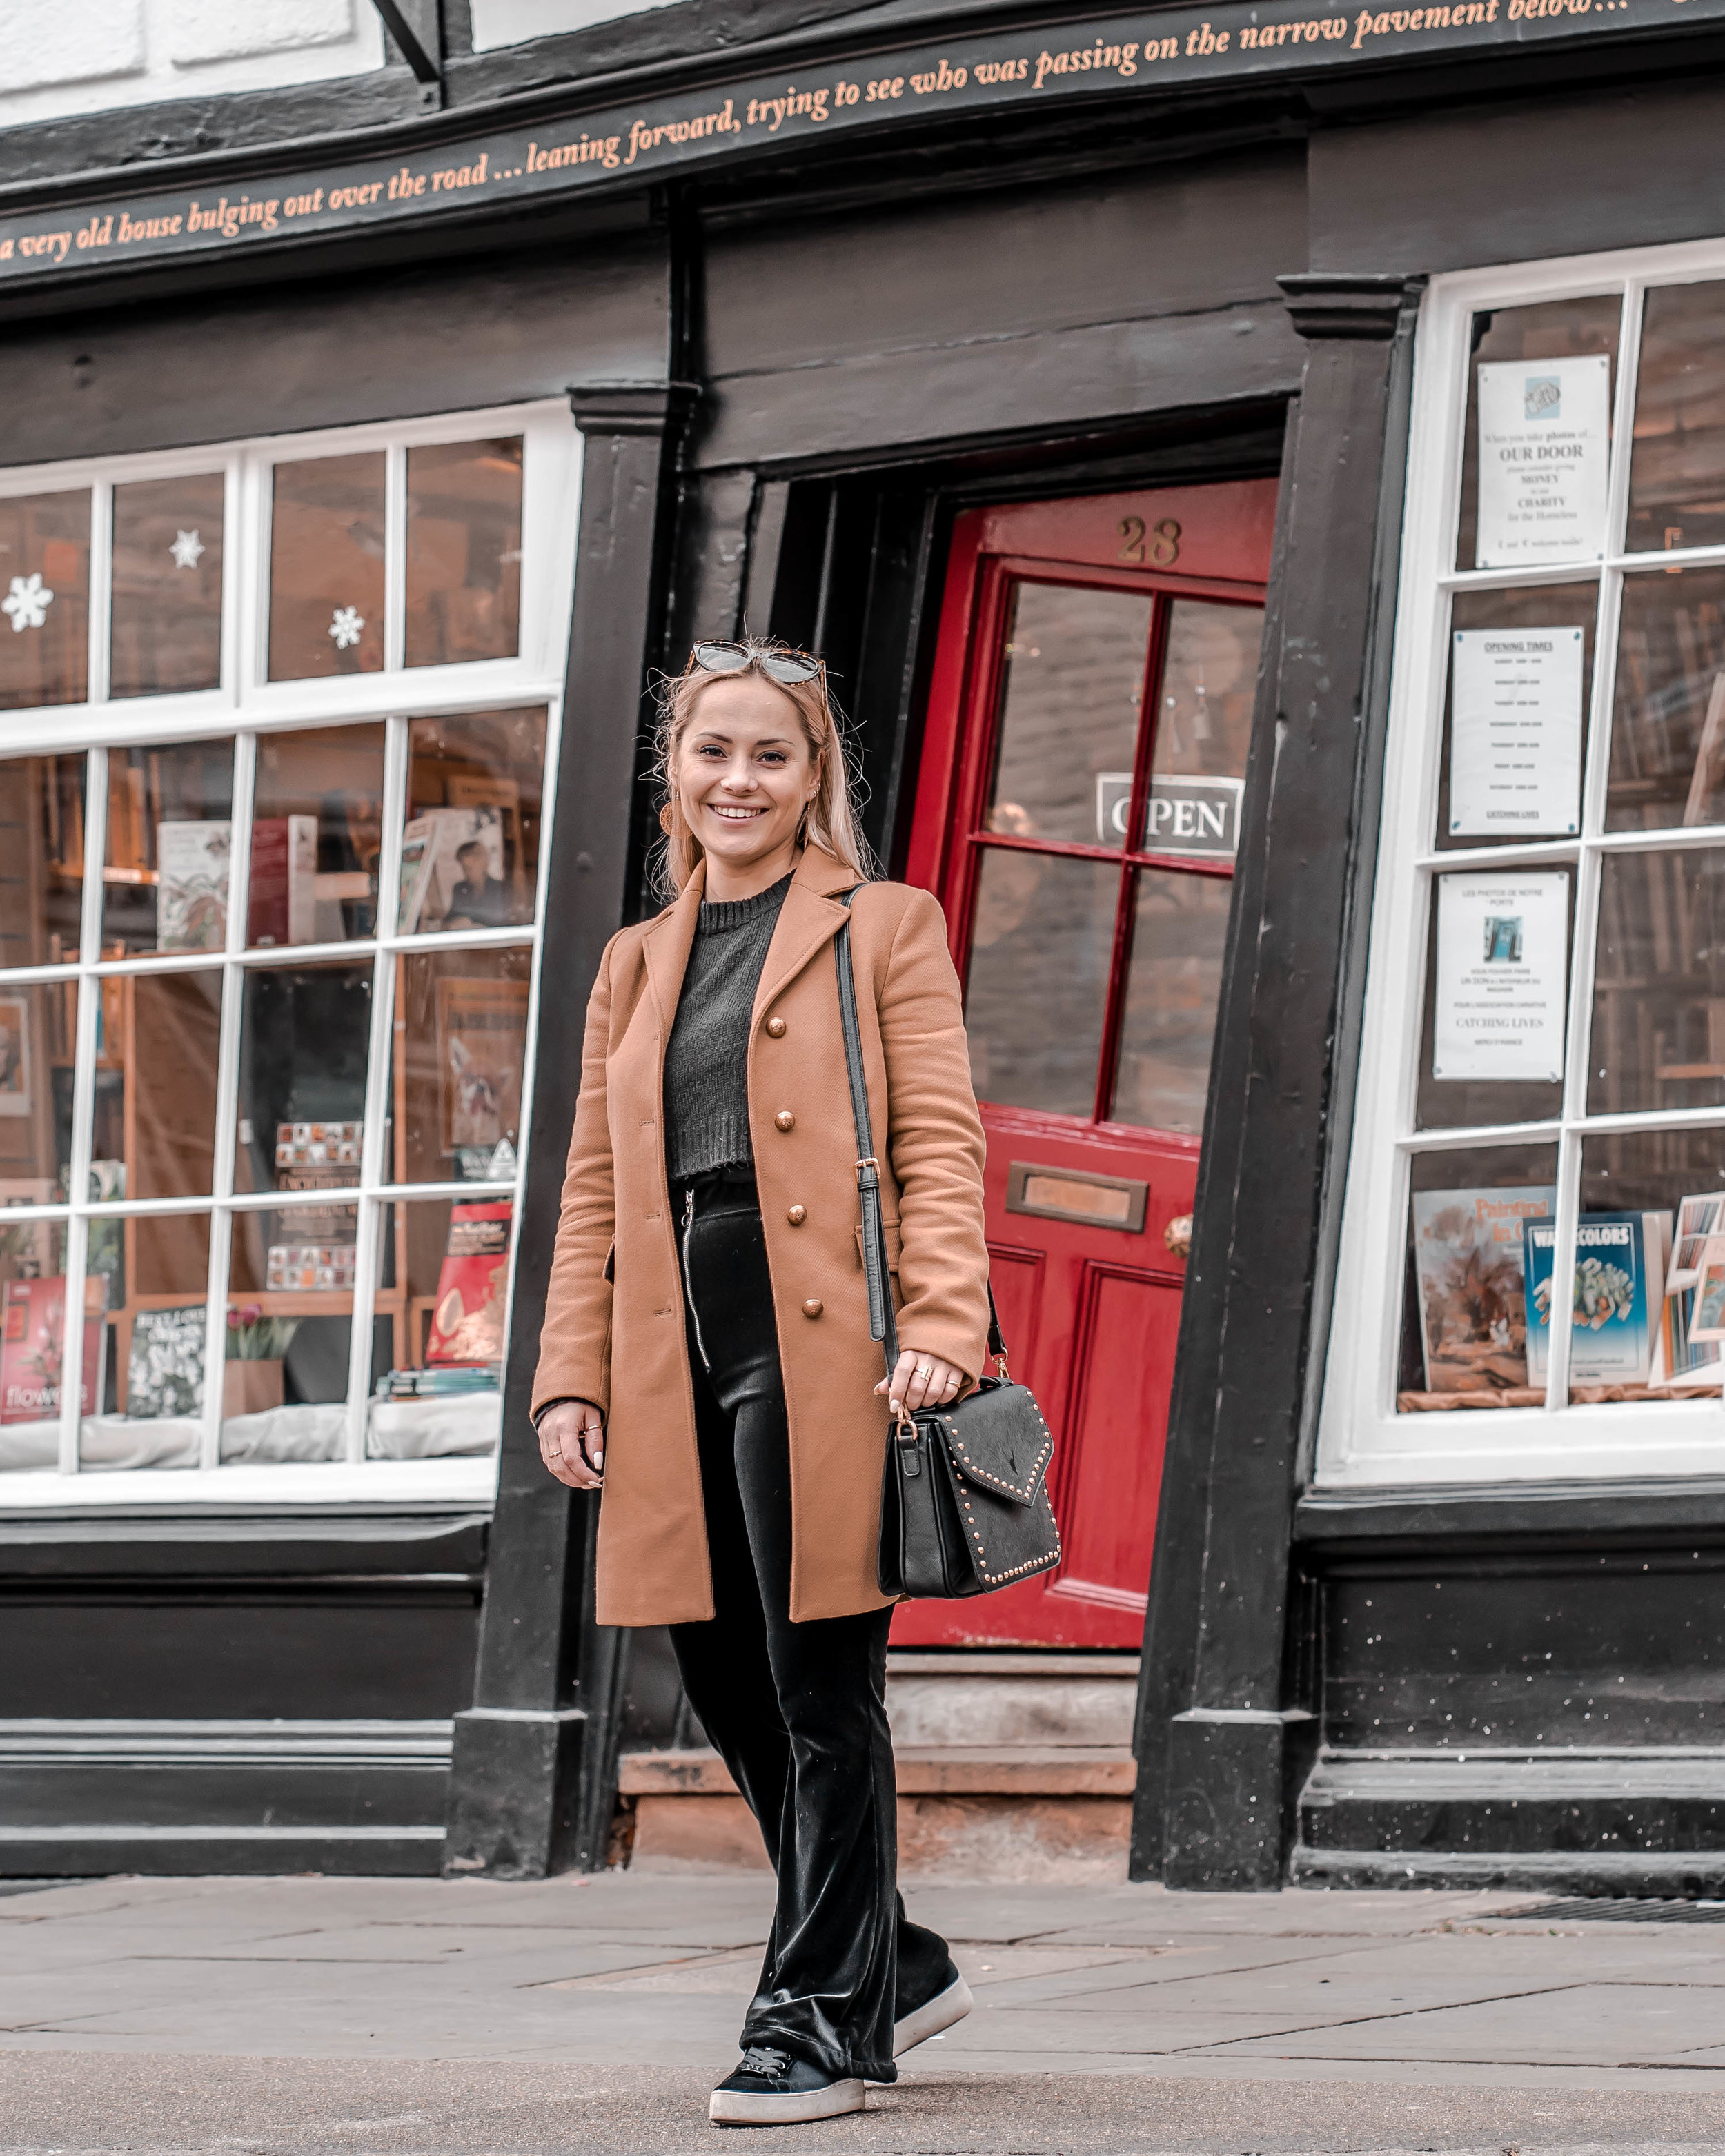 Marissa Galle, Canterbury, England, Citytrip, The Crooked House, Travel Blogger, Fashion Blogger, Lifestyle Blogger, Beauty Blogger, Beauty Specialist, Content Creator, Social Media Manager